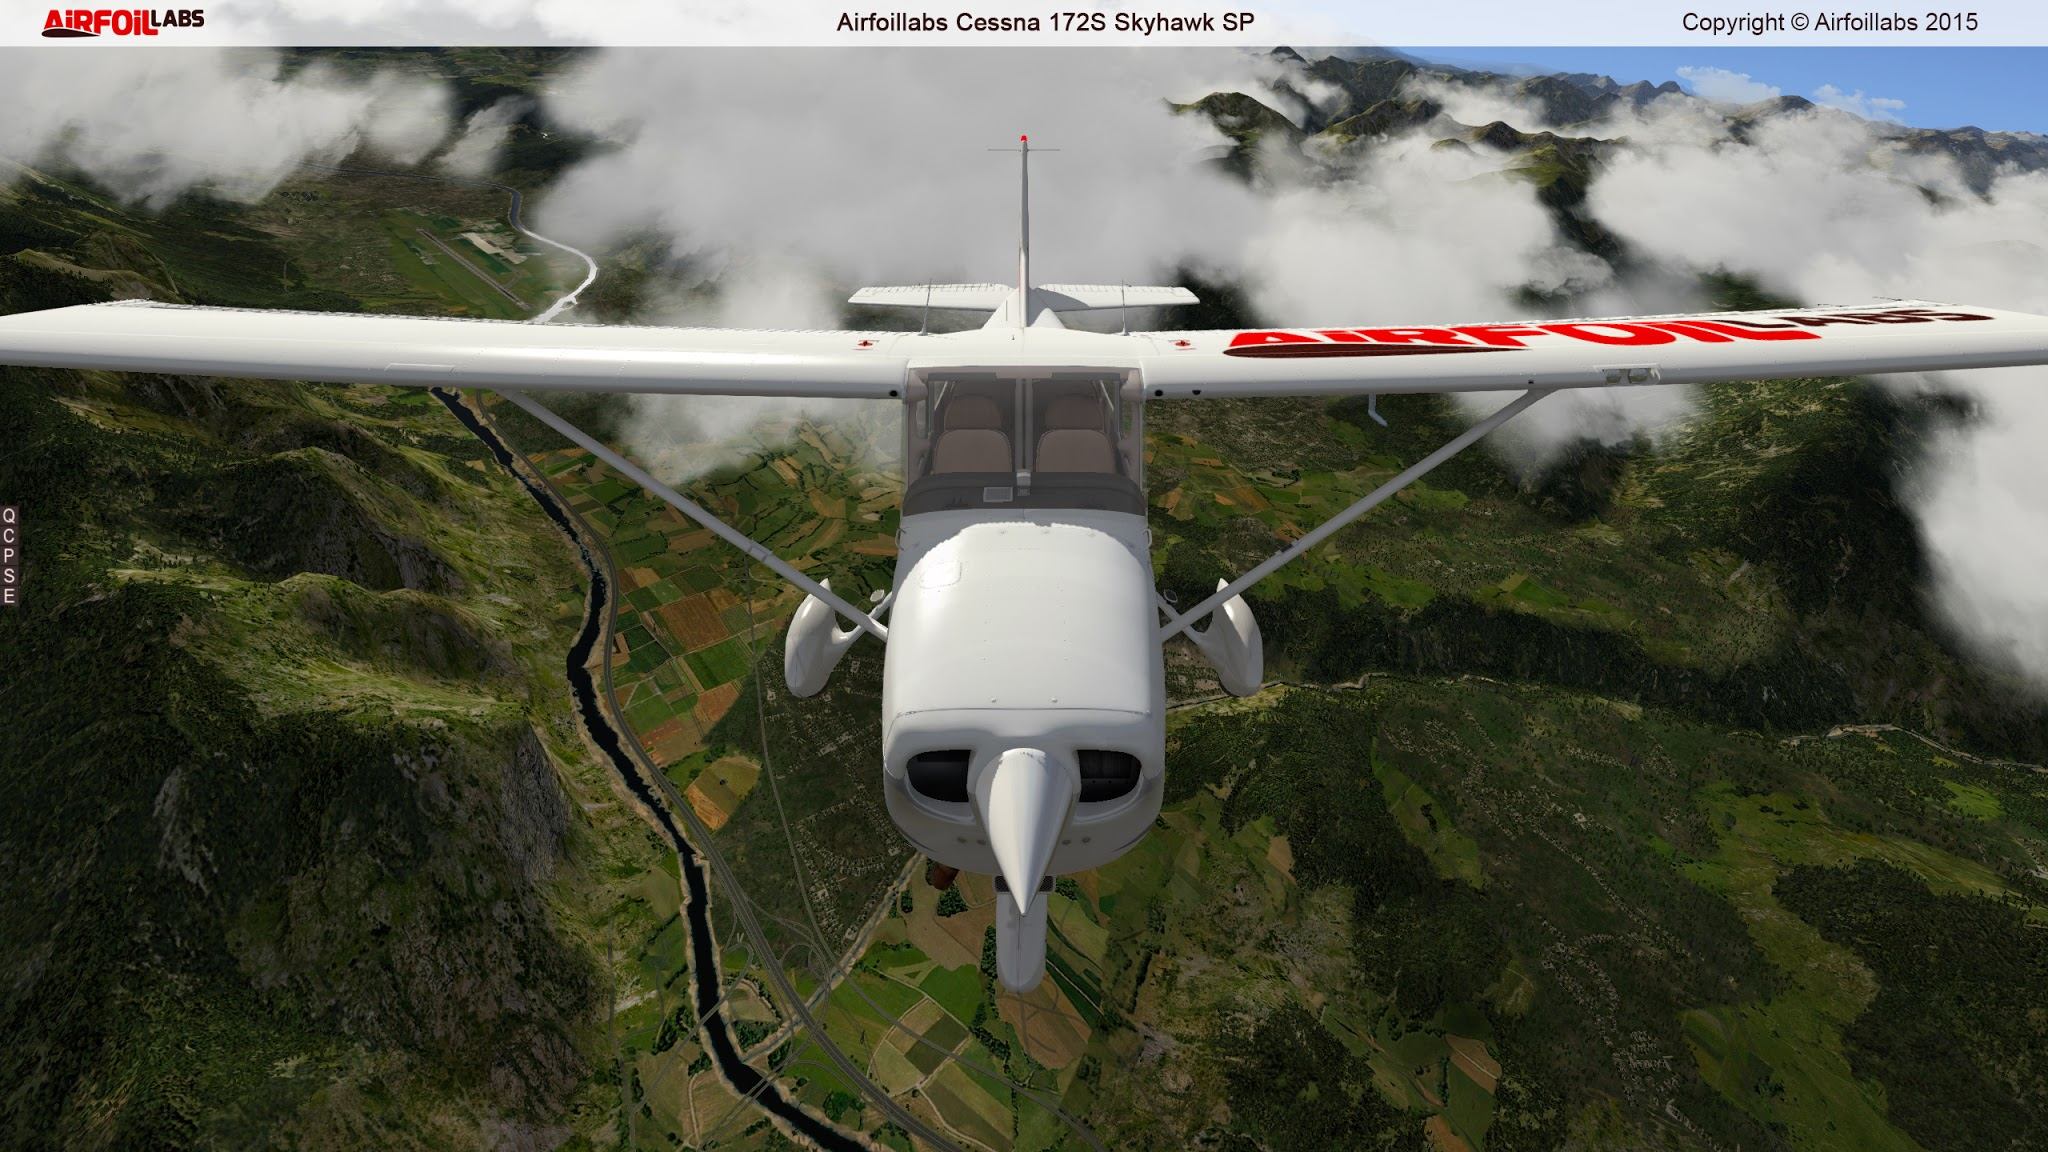 News Airfoillabs Releases The Cessna 172sp Skyhawk 172 Engineering Schematics 44thumbc3c021c77d5817fe0cdc913d97f